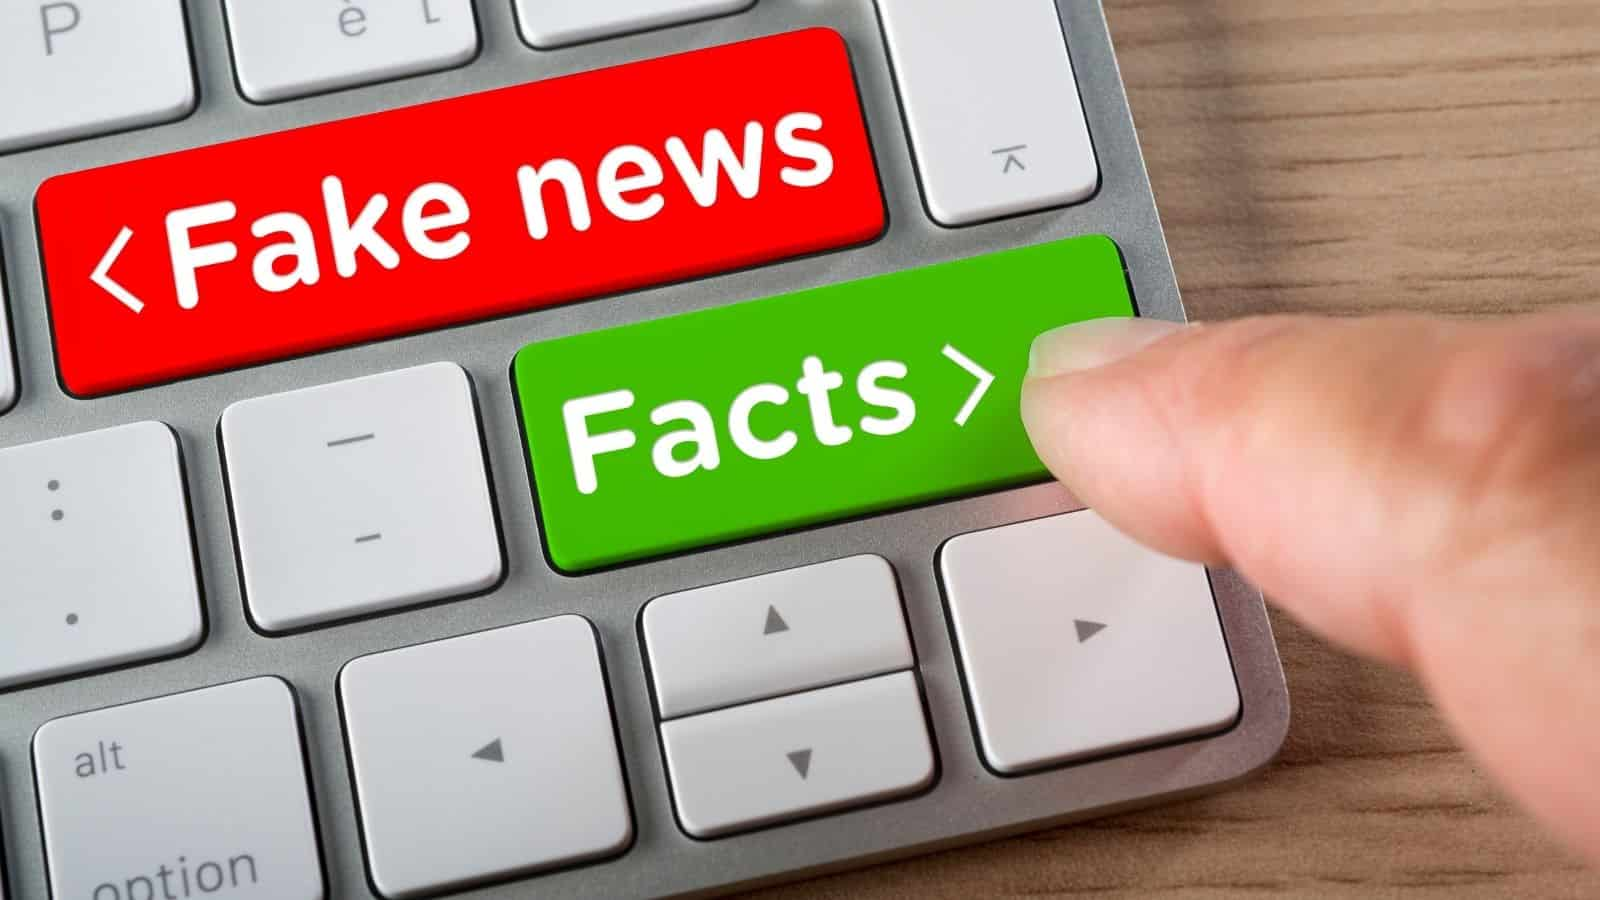 How To Teach Teens to Fact Check Media They Consume?